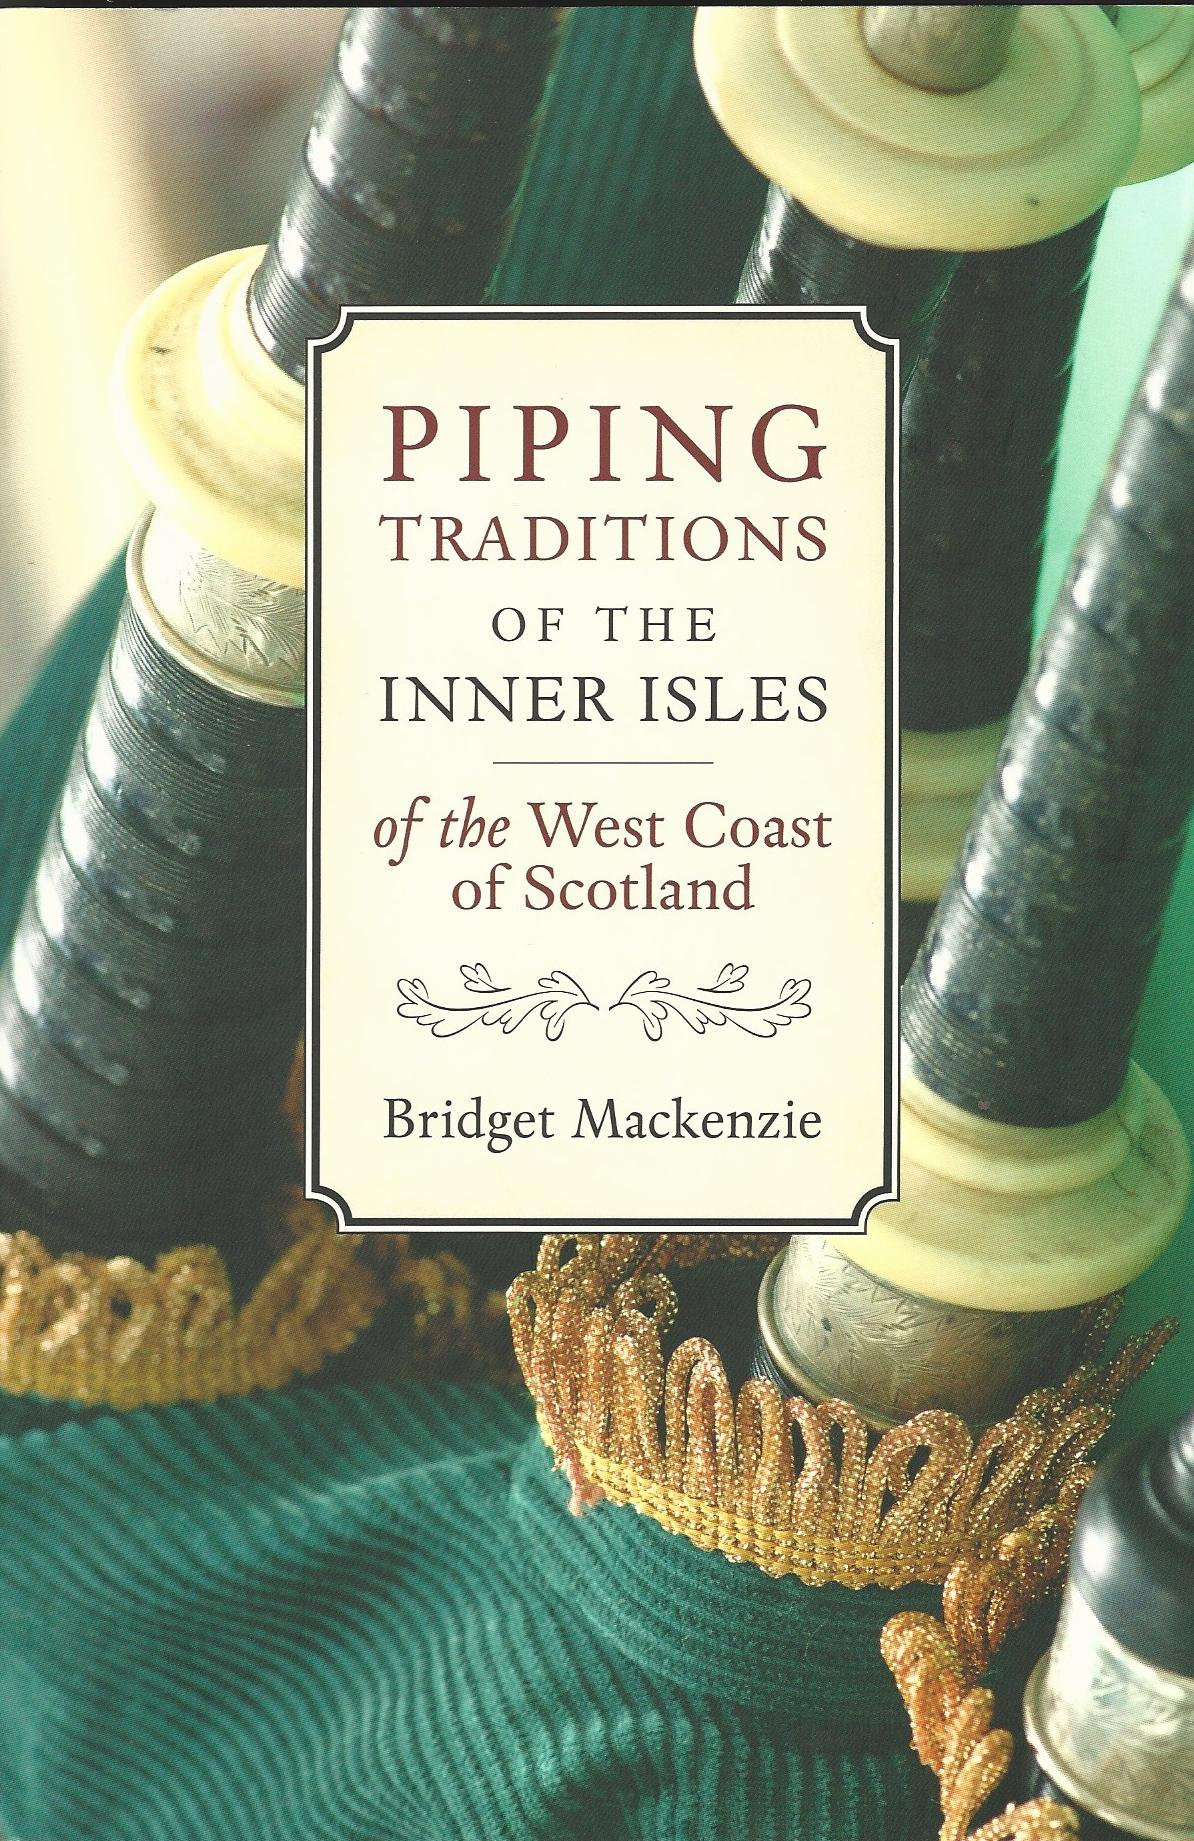 Image for Piping Traditions of the Inner Isles of the West Coast of Scotland